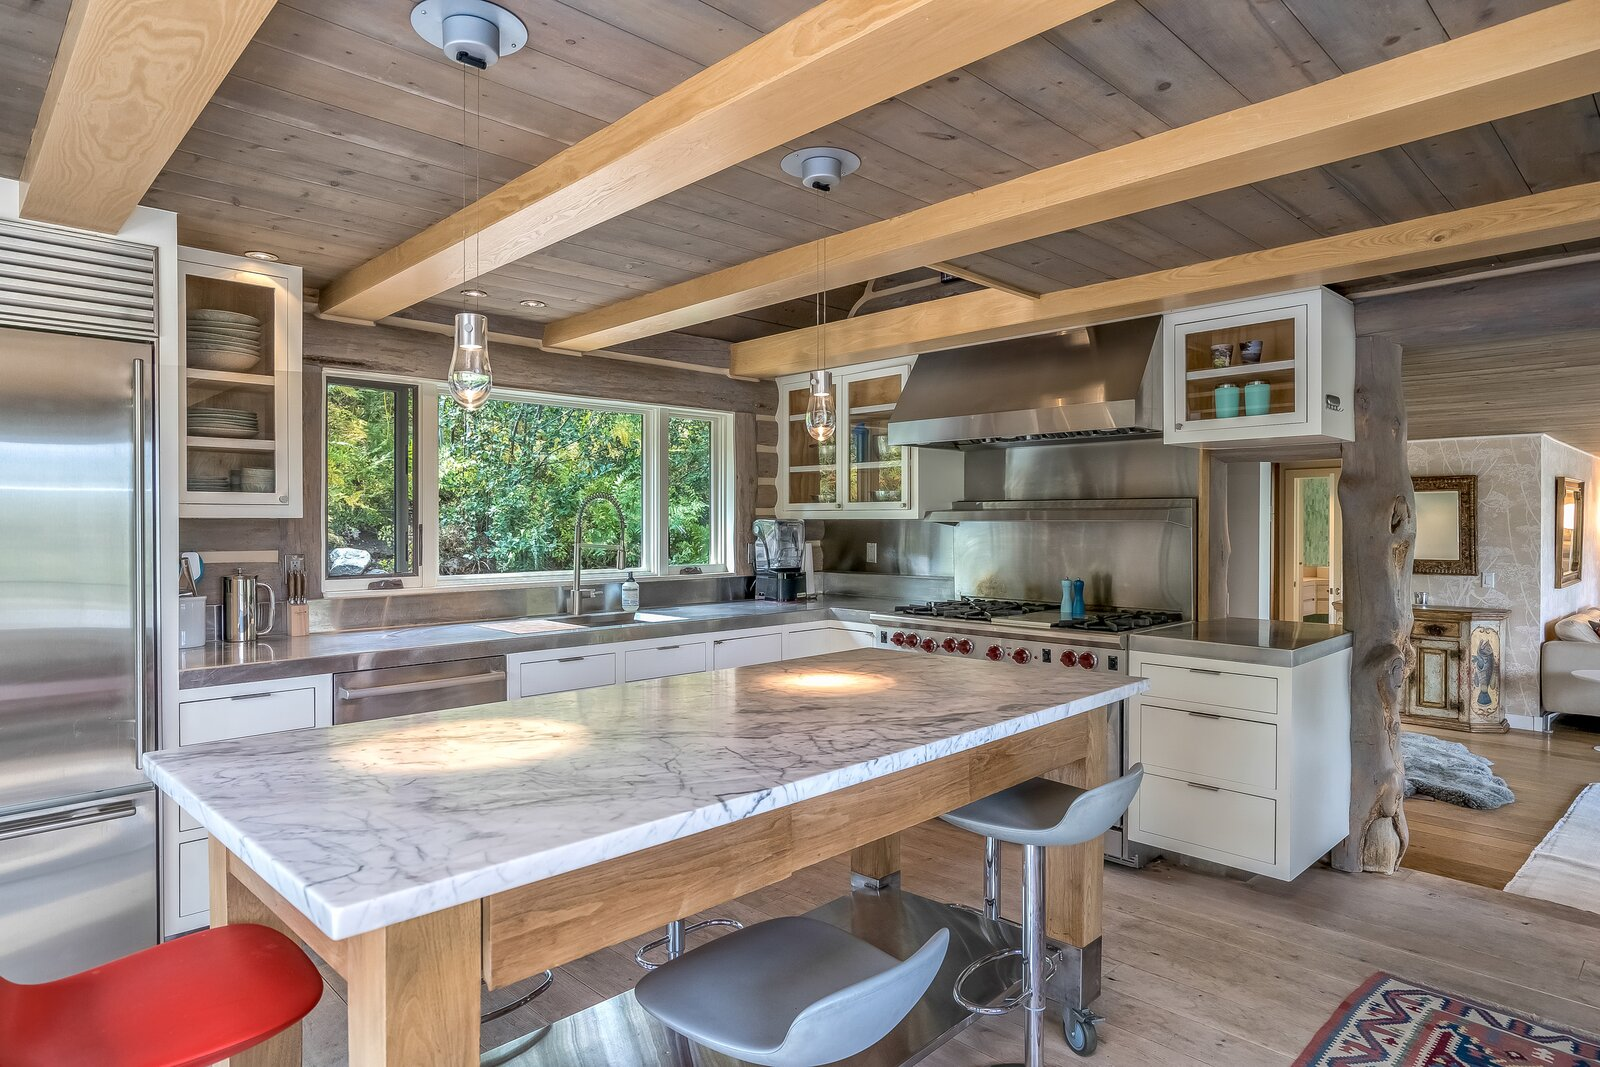 The updated kitchen features high-end, stainless steel countertops appliances, and finishes with glass cabinets and kitchen island. Contrasting exposed  beam ceiling visually opens up space.  Photo 4 of 16 in An Updated Log Cabin–Style Home in Colorado Seeks $2.4M